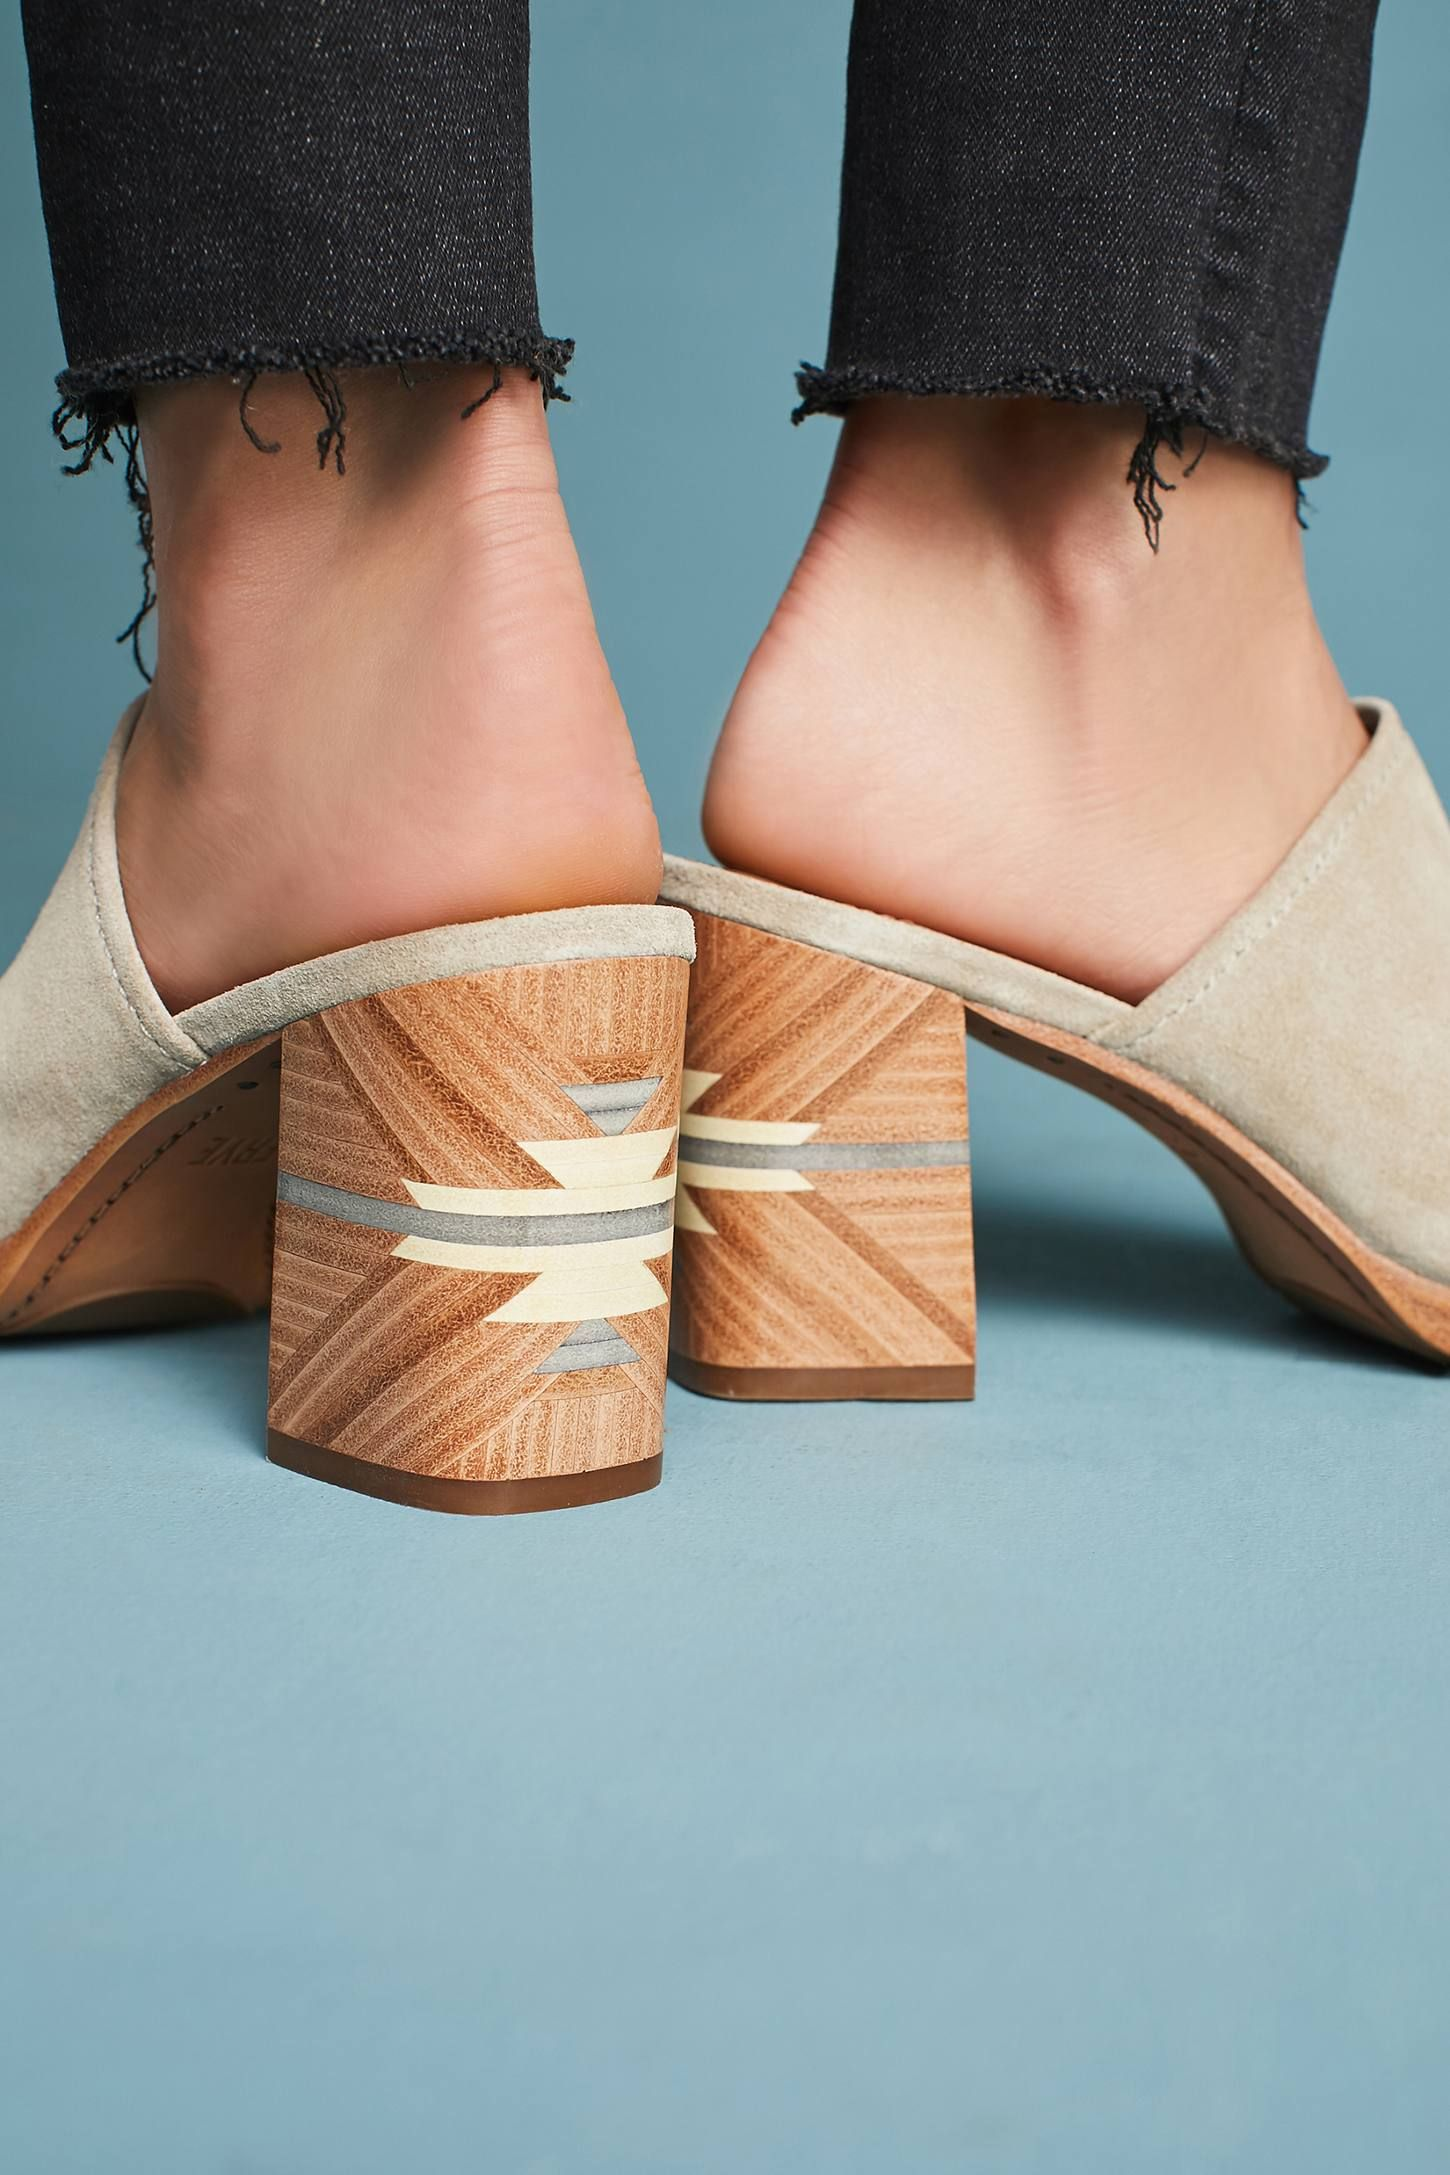 fe64dfa7fd6 Shop the Frye Blake Sedona Mules and more Anthropologie at Anthropologie  today. Read customer reviews